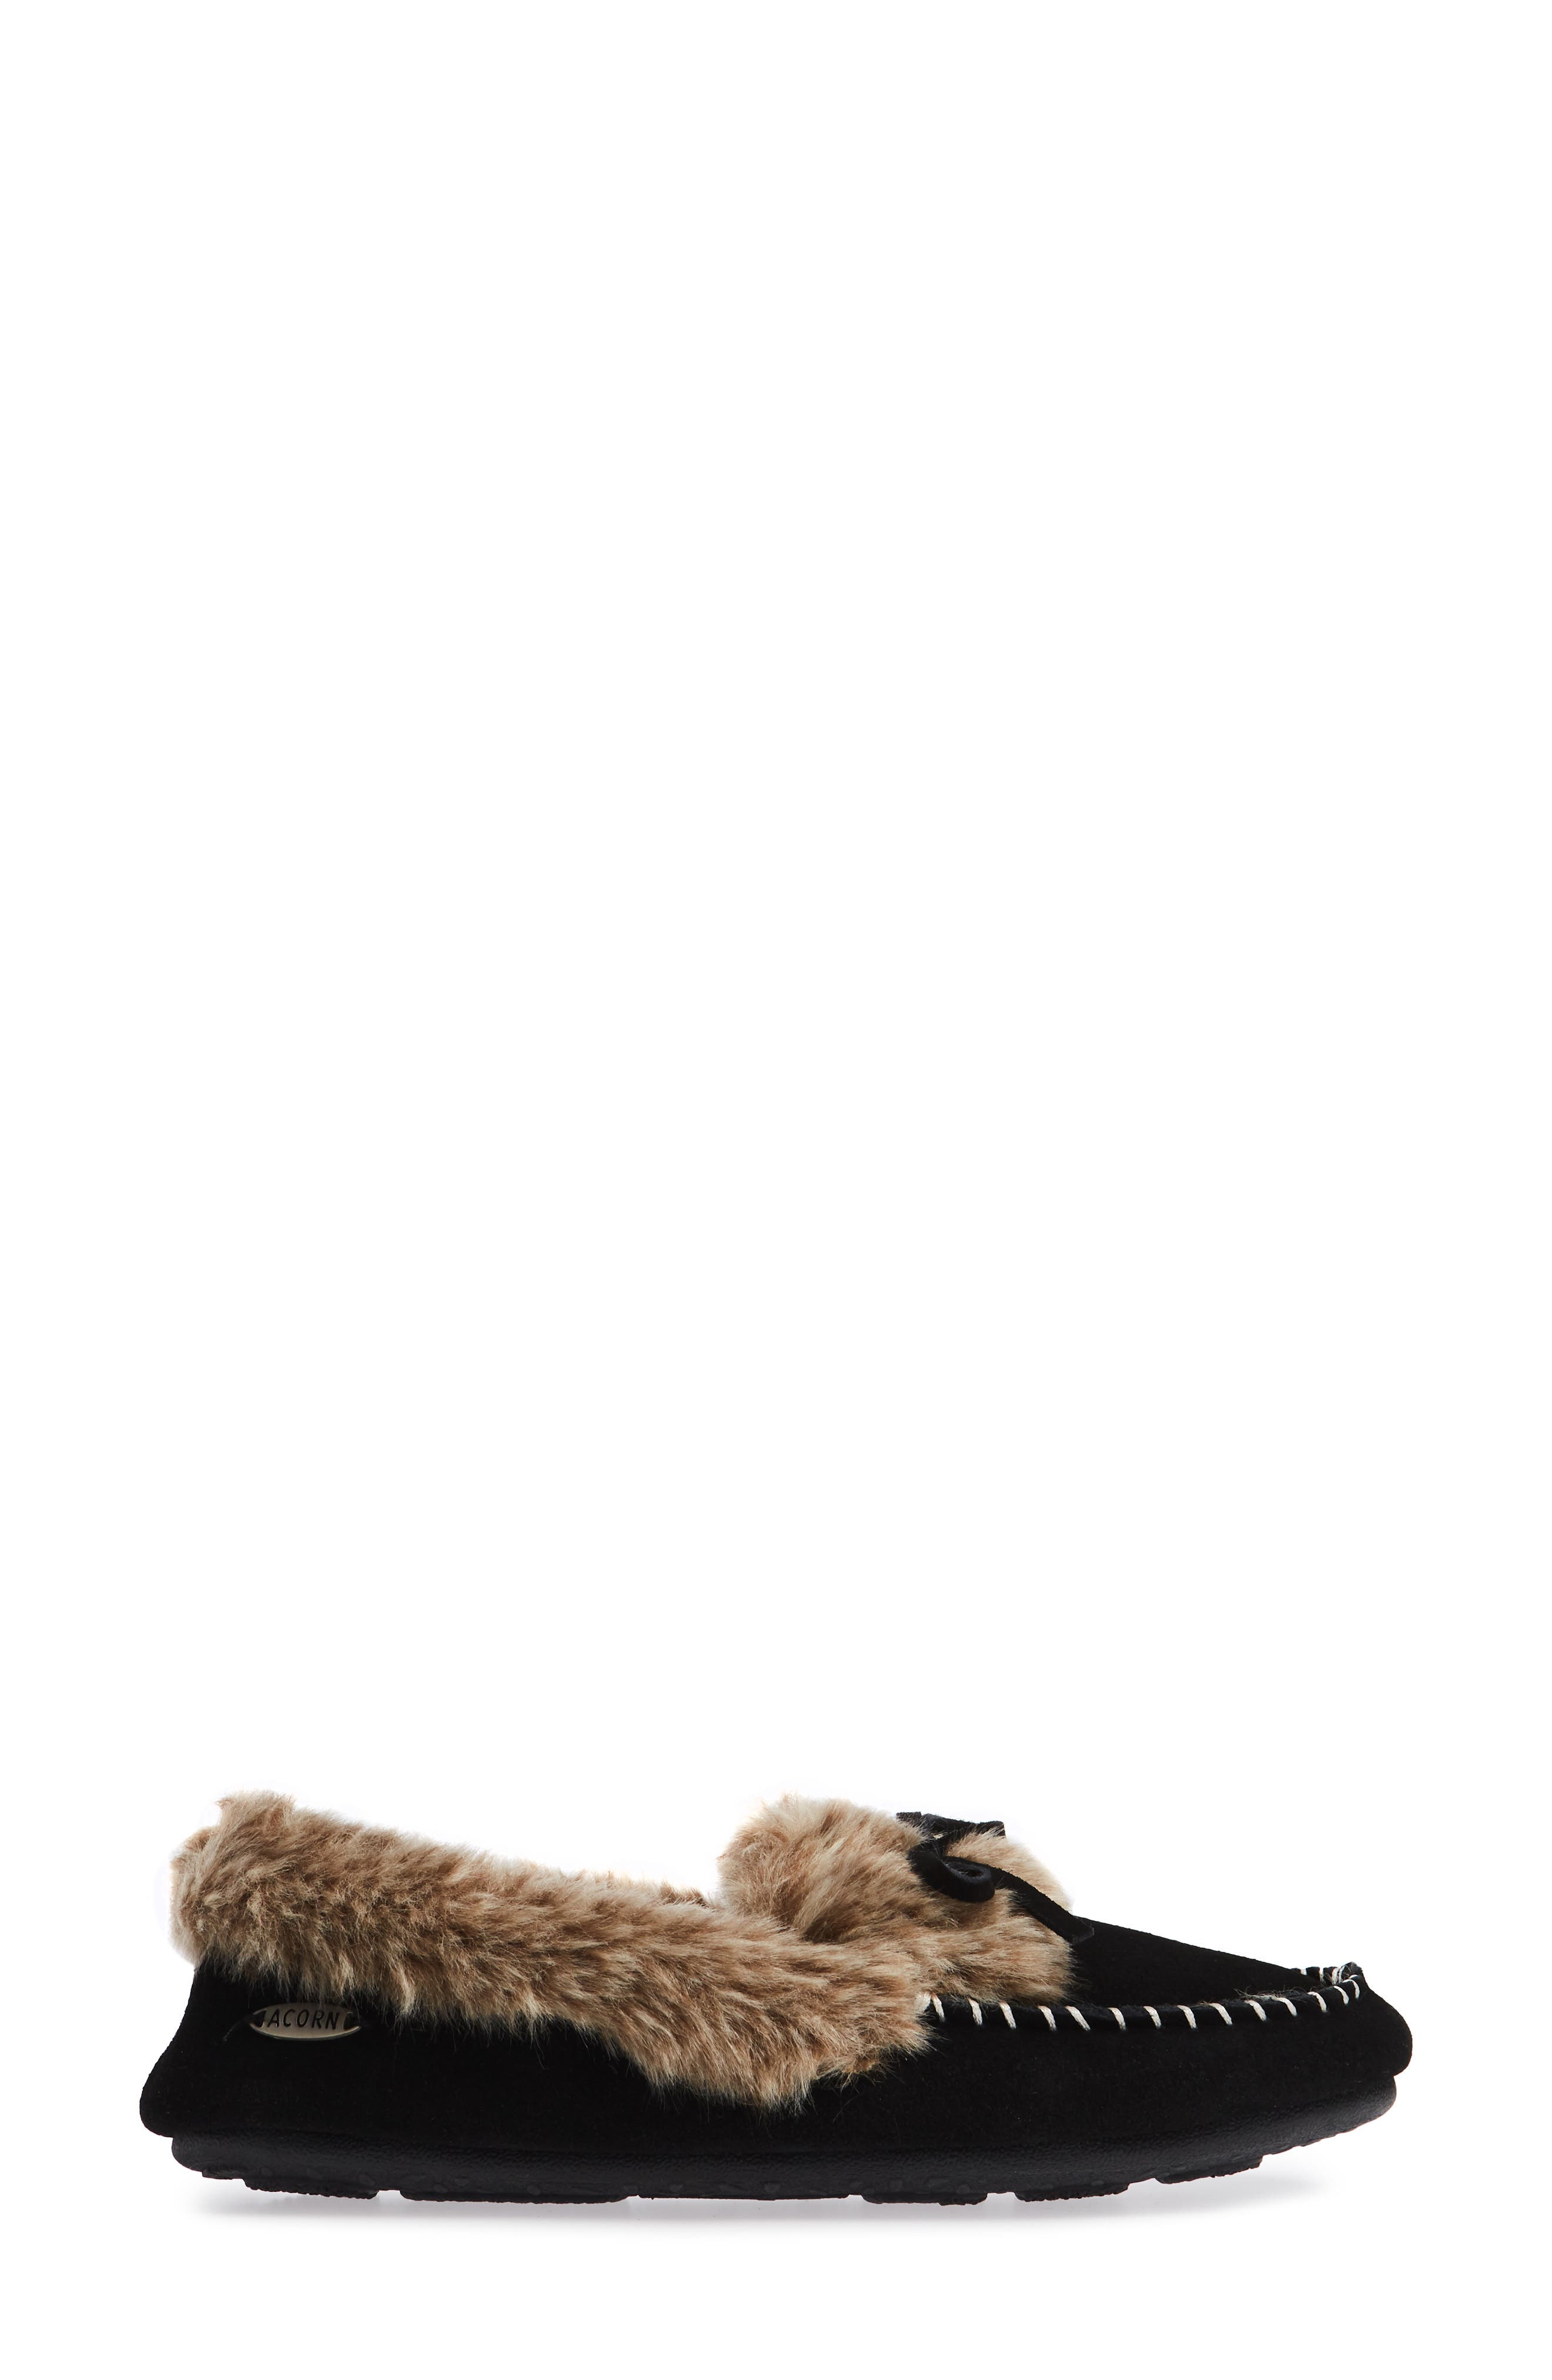 ACORN, Faux Fur Trim Moccasin Indoor/Outdoor Slipper, Alternate thumbnail 3, color, BLACK SUEDE